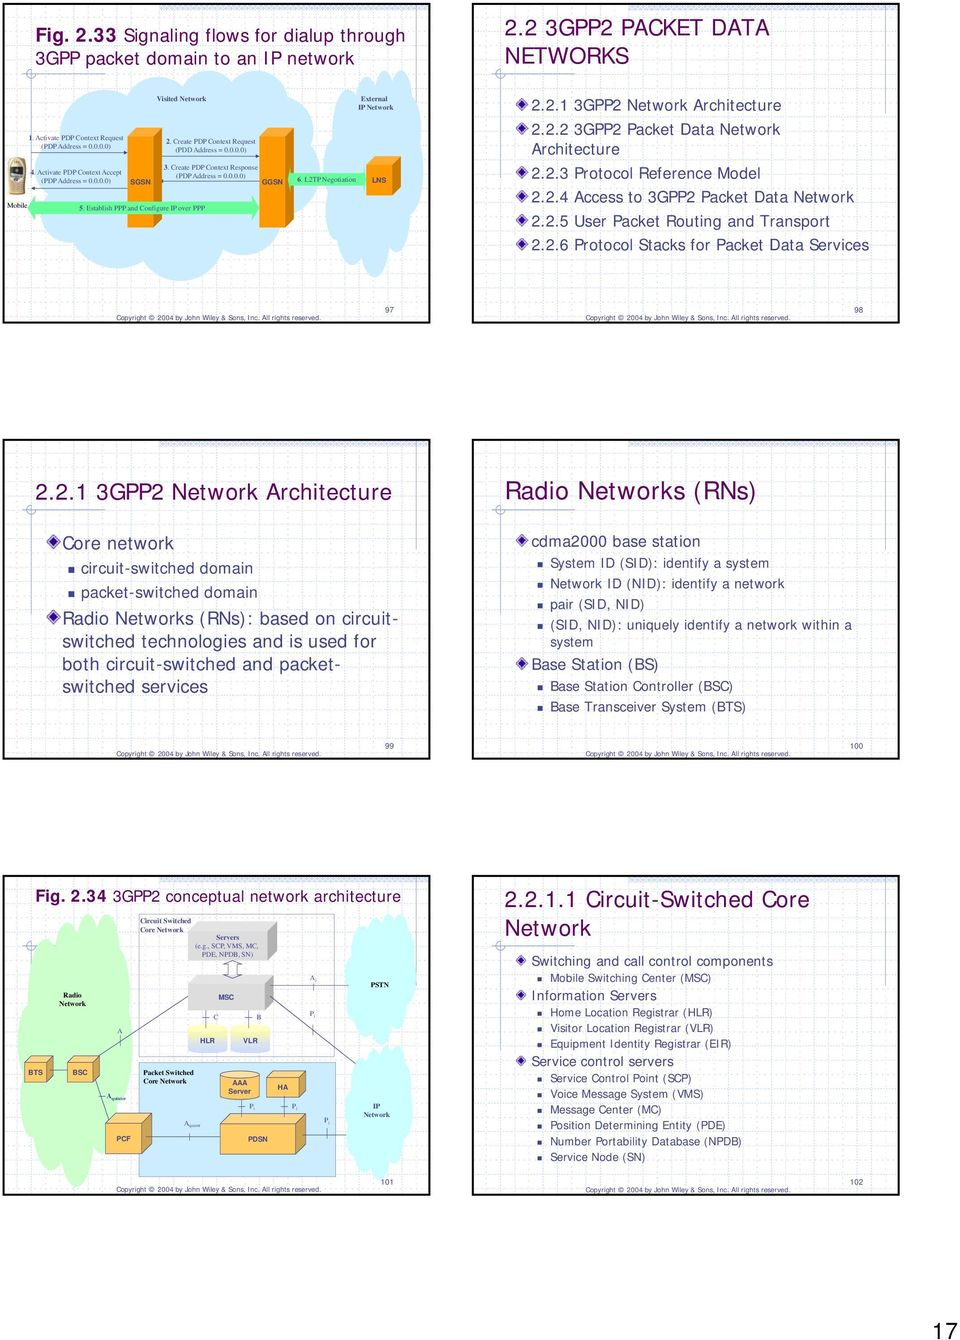 L2TP Negotiation LNS 5. Establish PPP and Configure over PPP 2.2.1 3GPP2 Network Architecture 2.2.2 3GPP2 Packet Data Network Architecture 2.2.3 Protocol Reference Model 2.2.4 Access to 3GPP2 Packet Data Network 2.